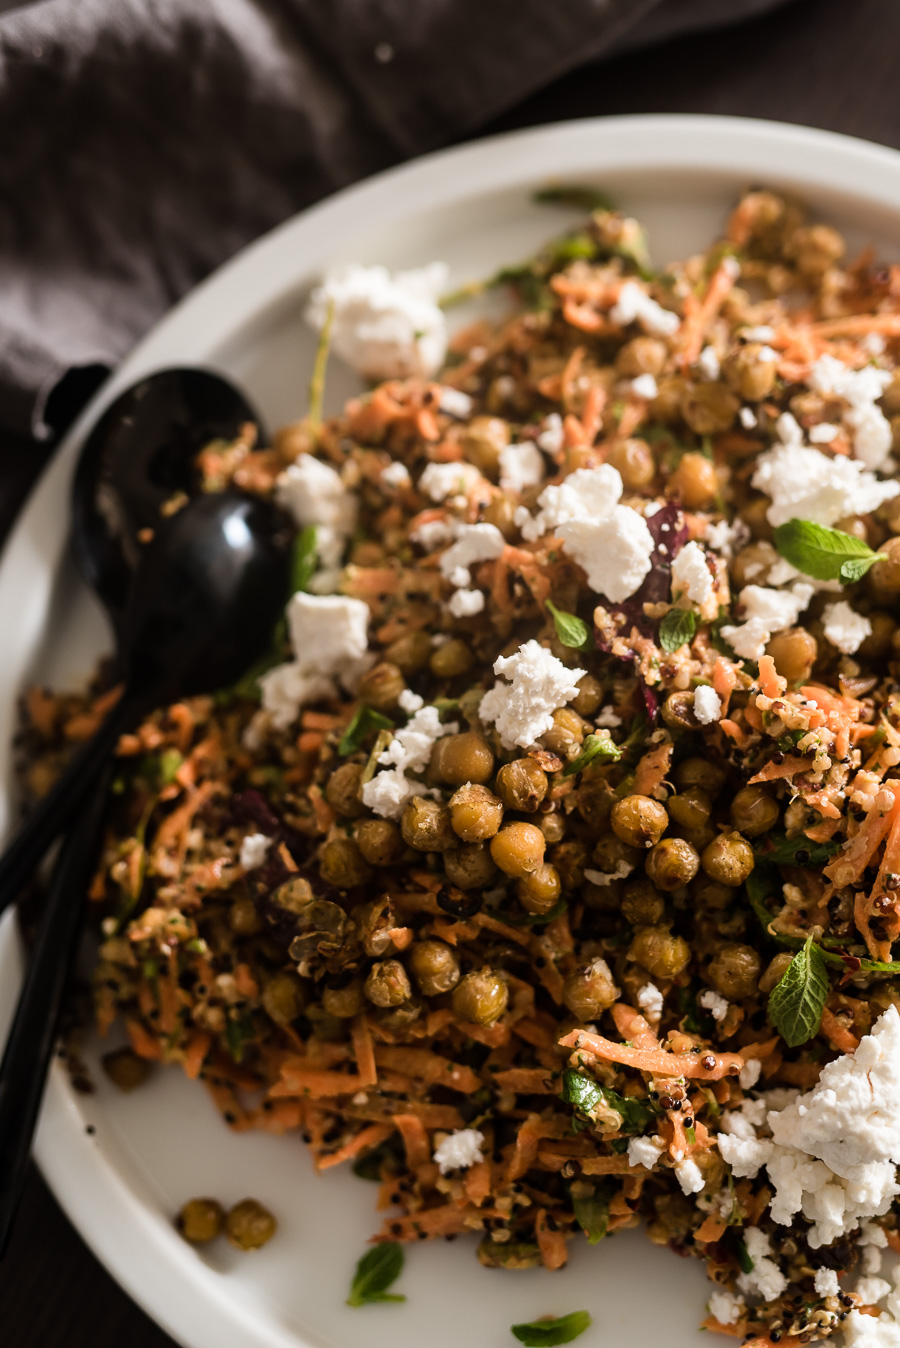 QUINOA CARROT SALAD WITH TAHINI-HARISSA DRESSING AND ZA'ATAR CHICKPEAS